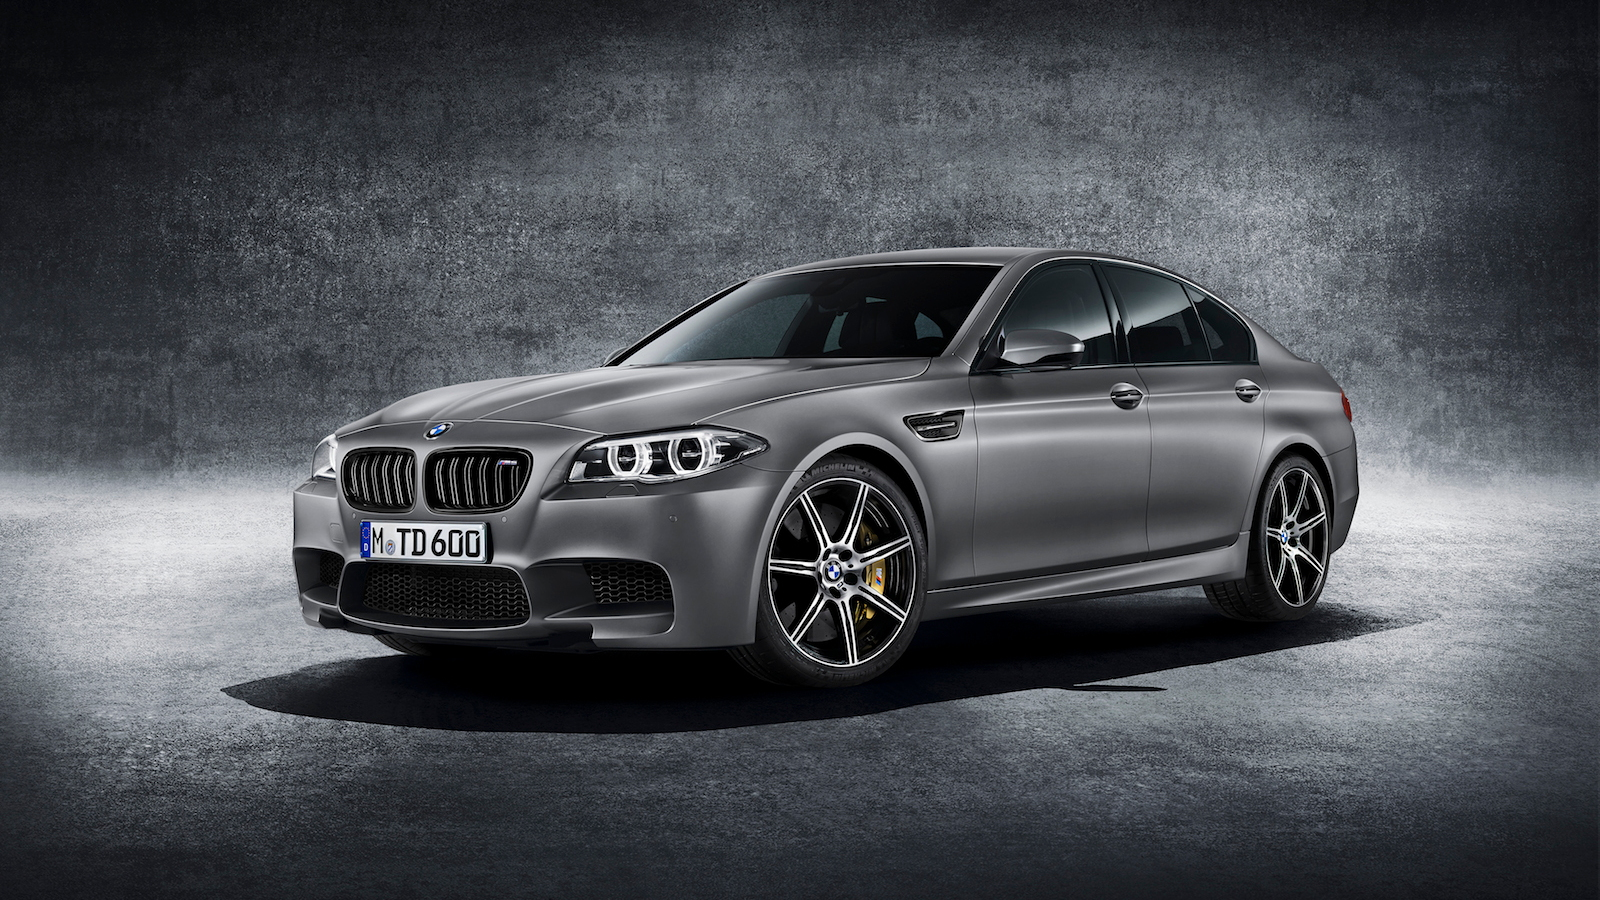 30th Anniversary BMW M5